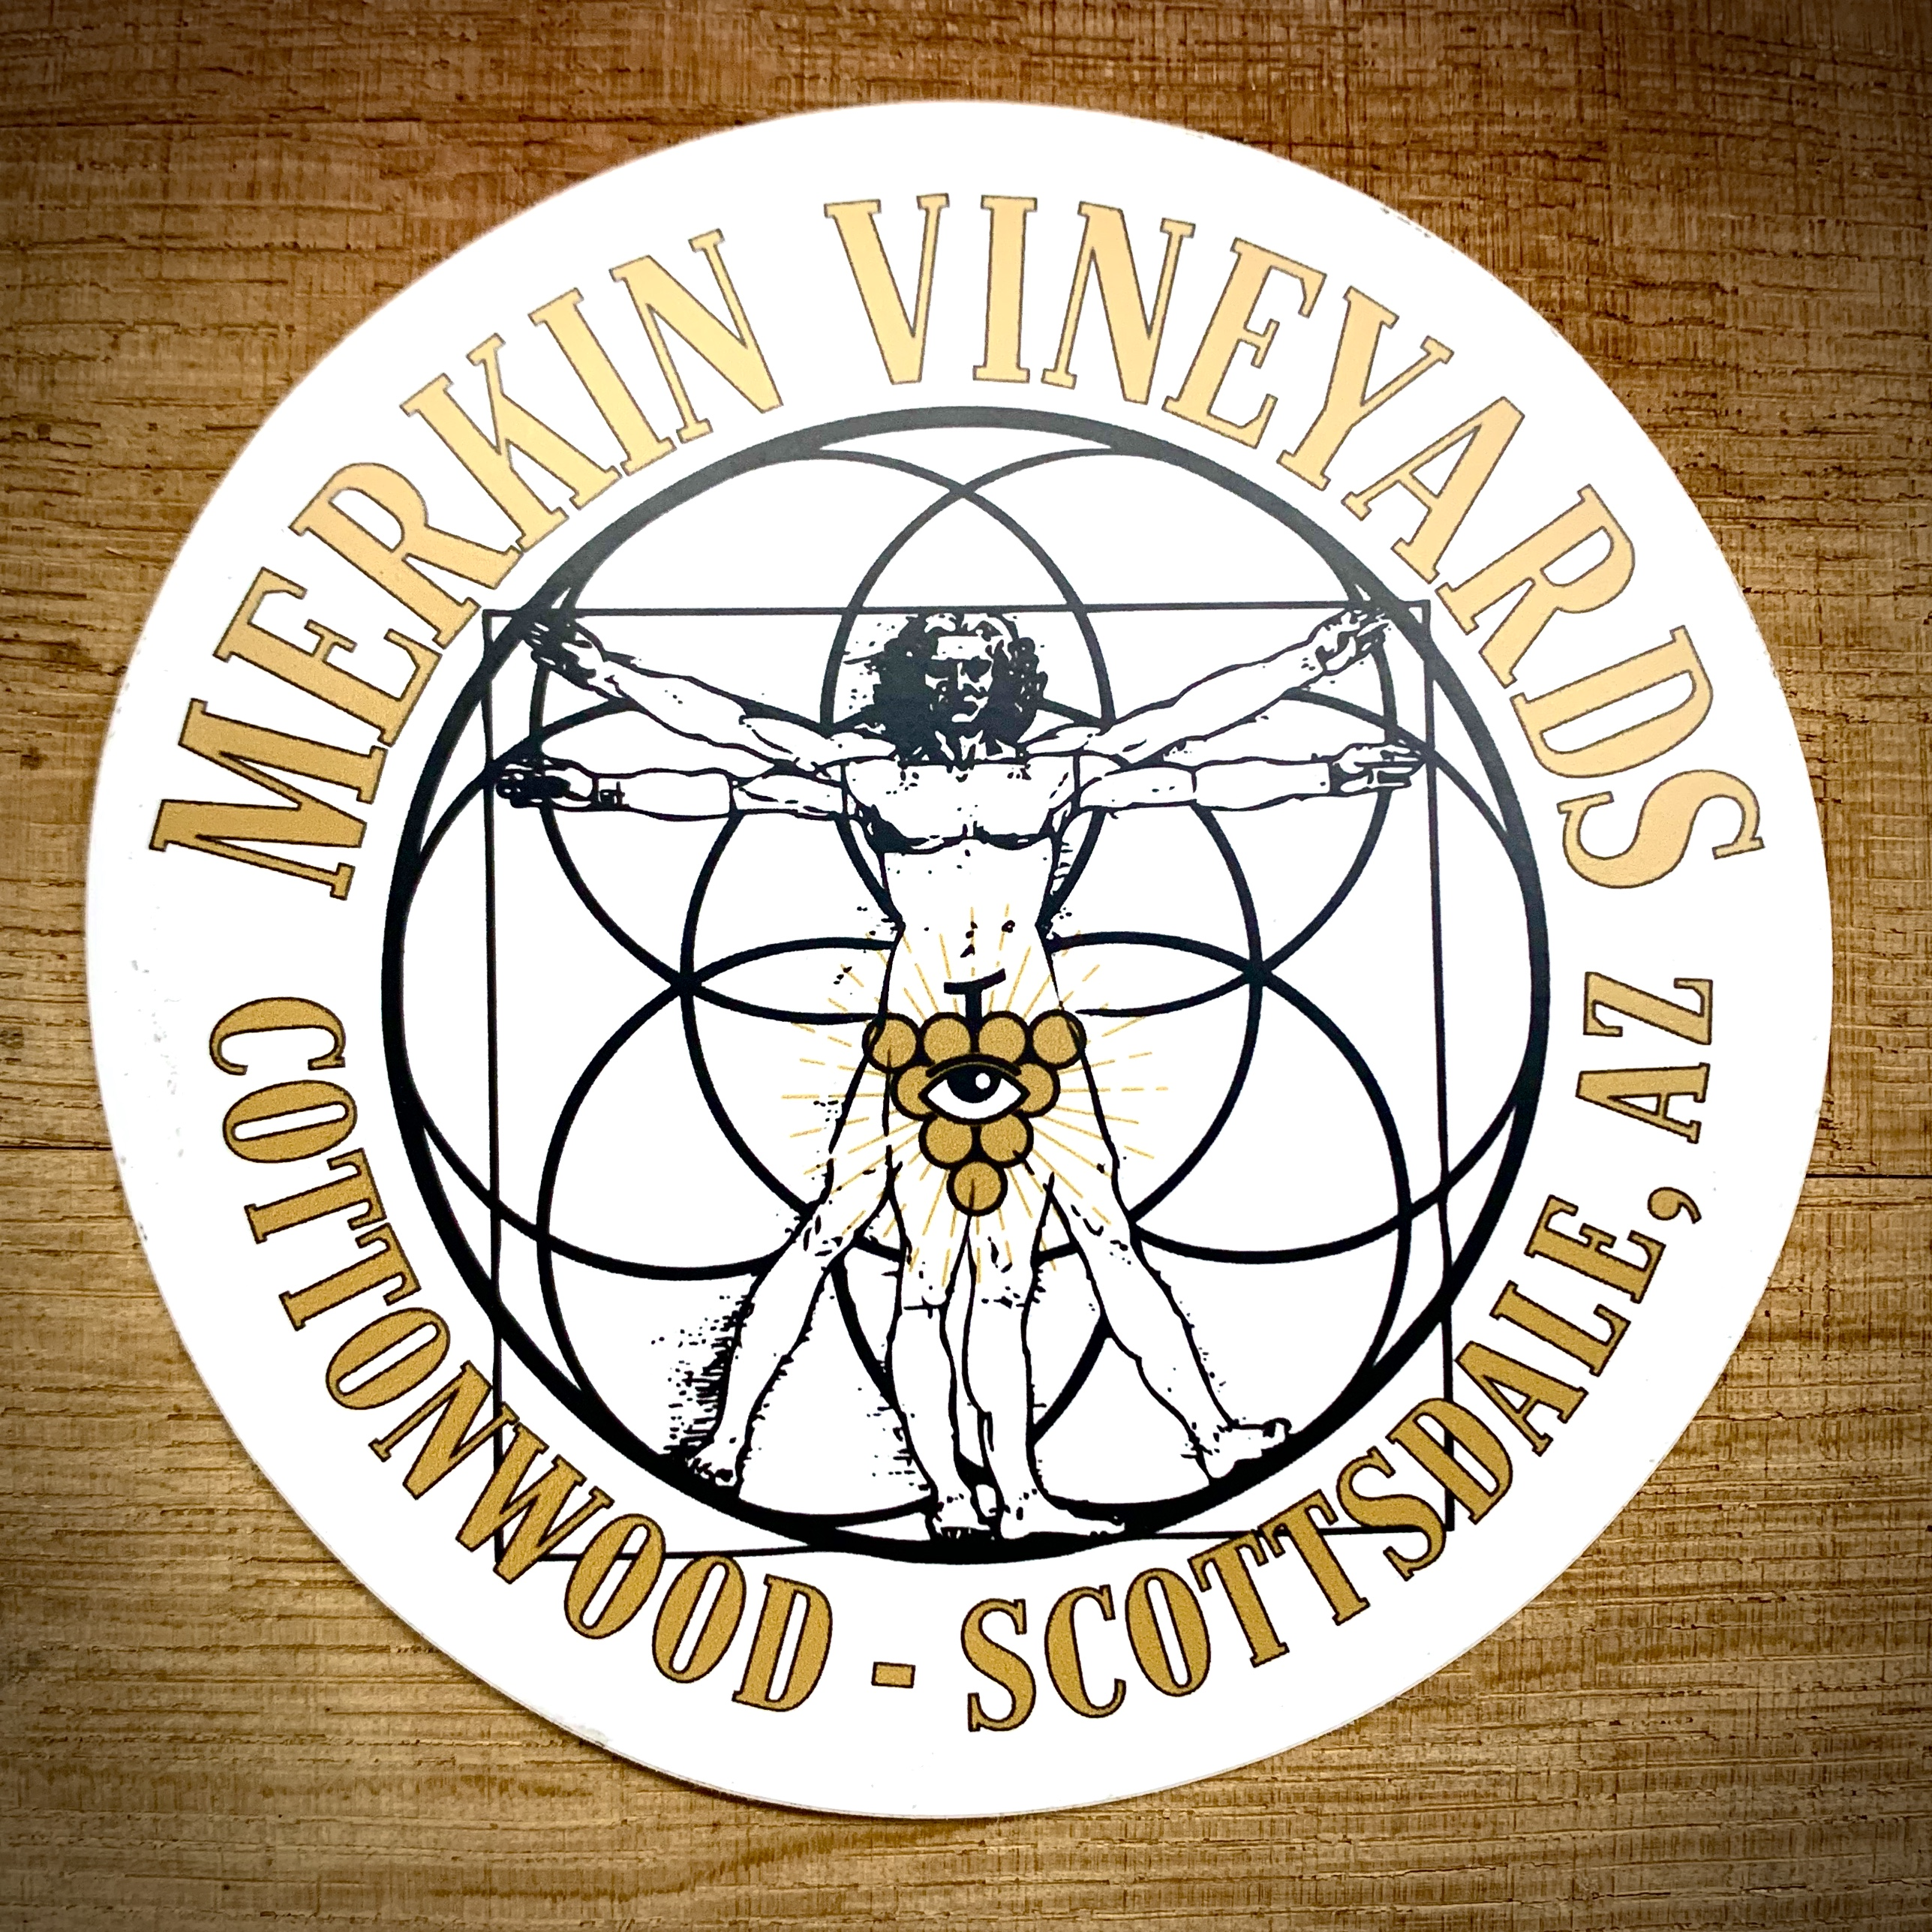 Merkin Vineyards Sticker